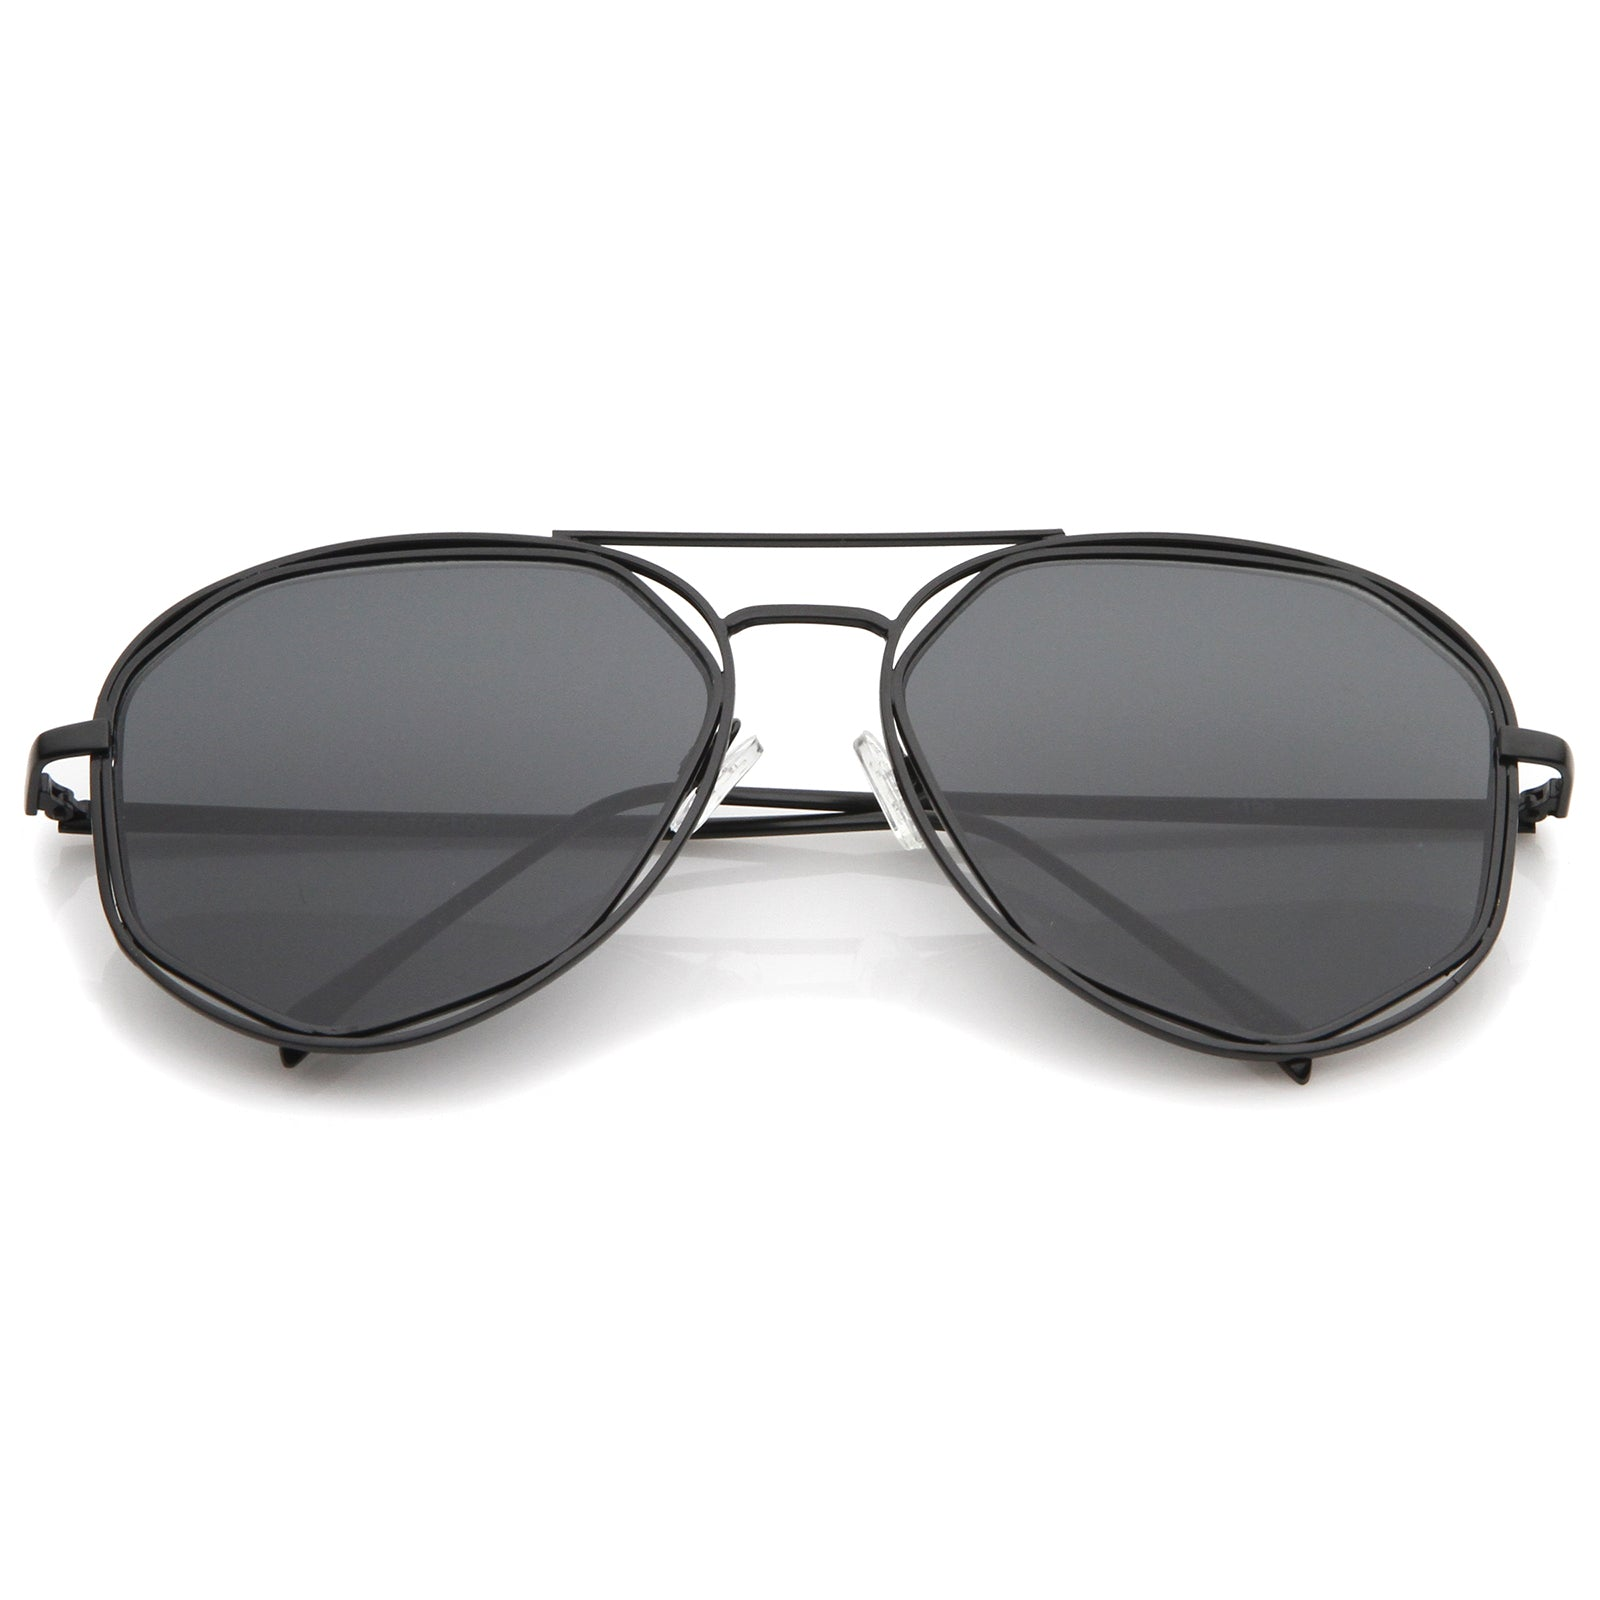 Geometric Hexagonal Metal Frame Neutral Colored Flat Lens Aviator Sunglasses 60mm - sunglass.la - 7